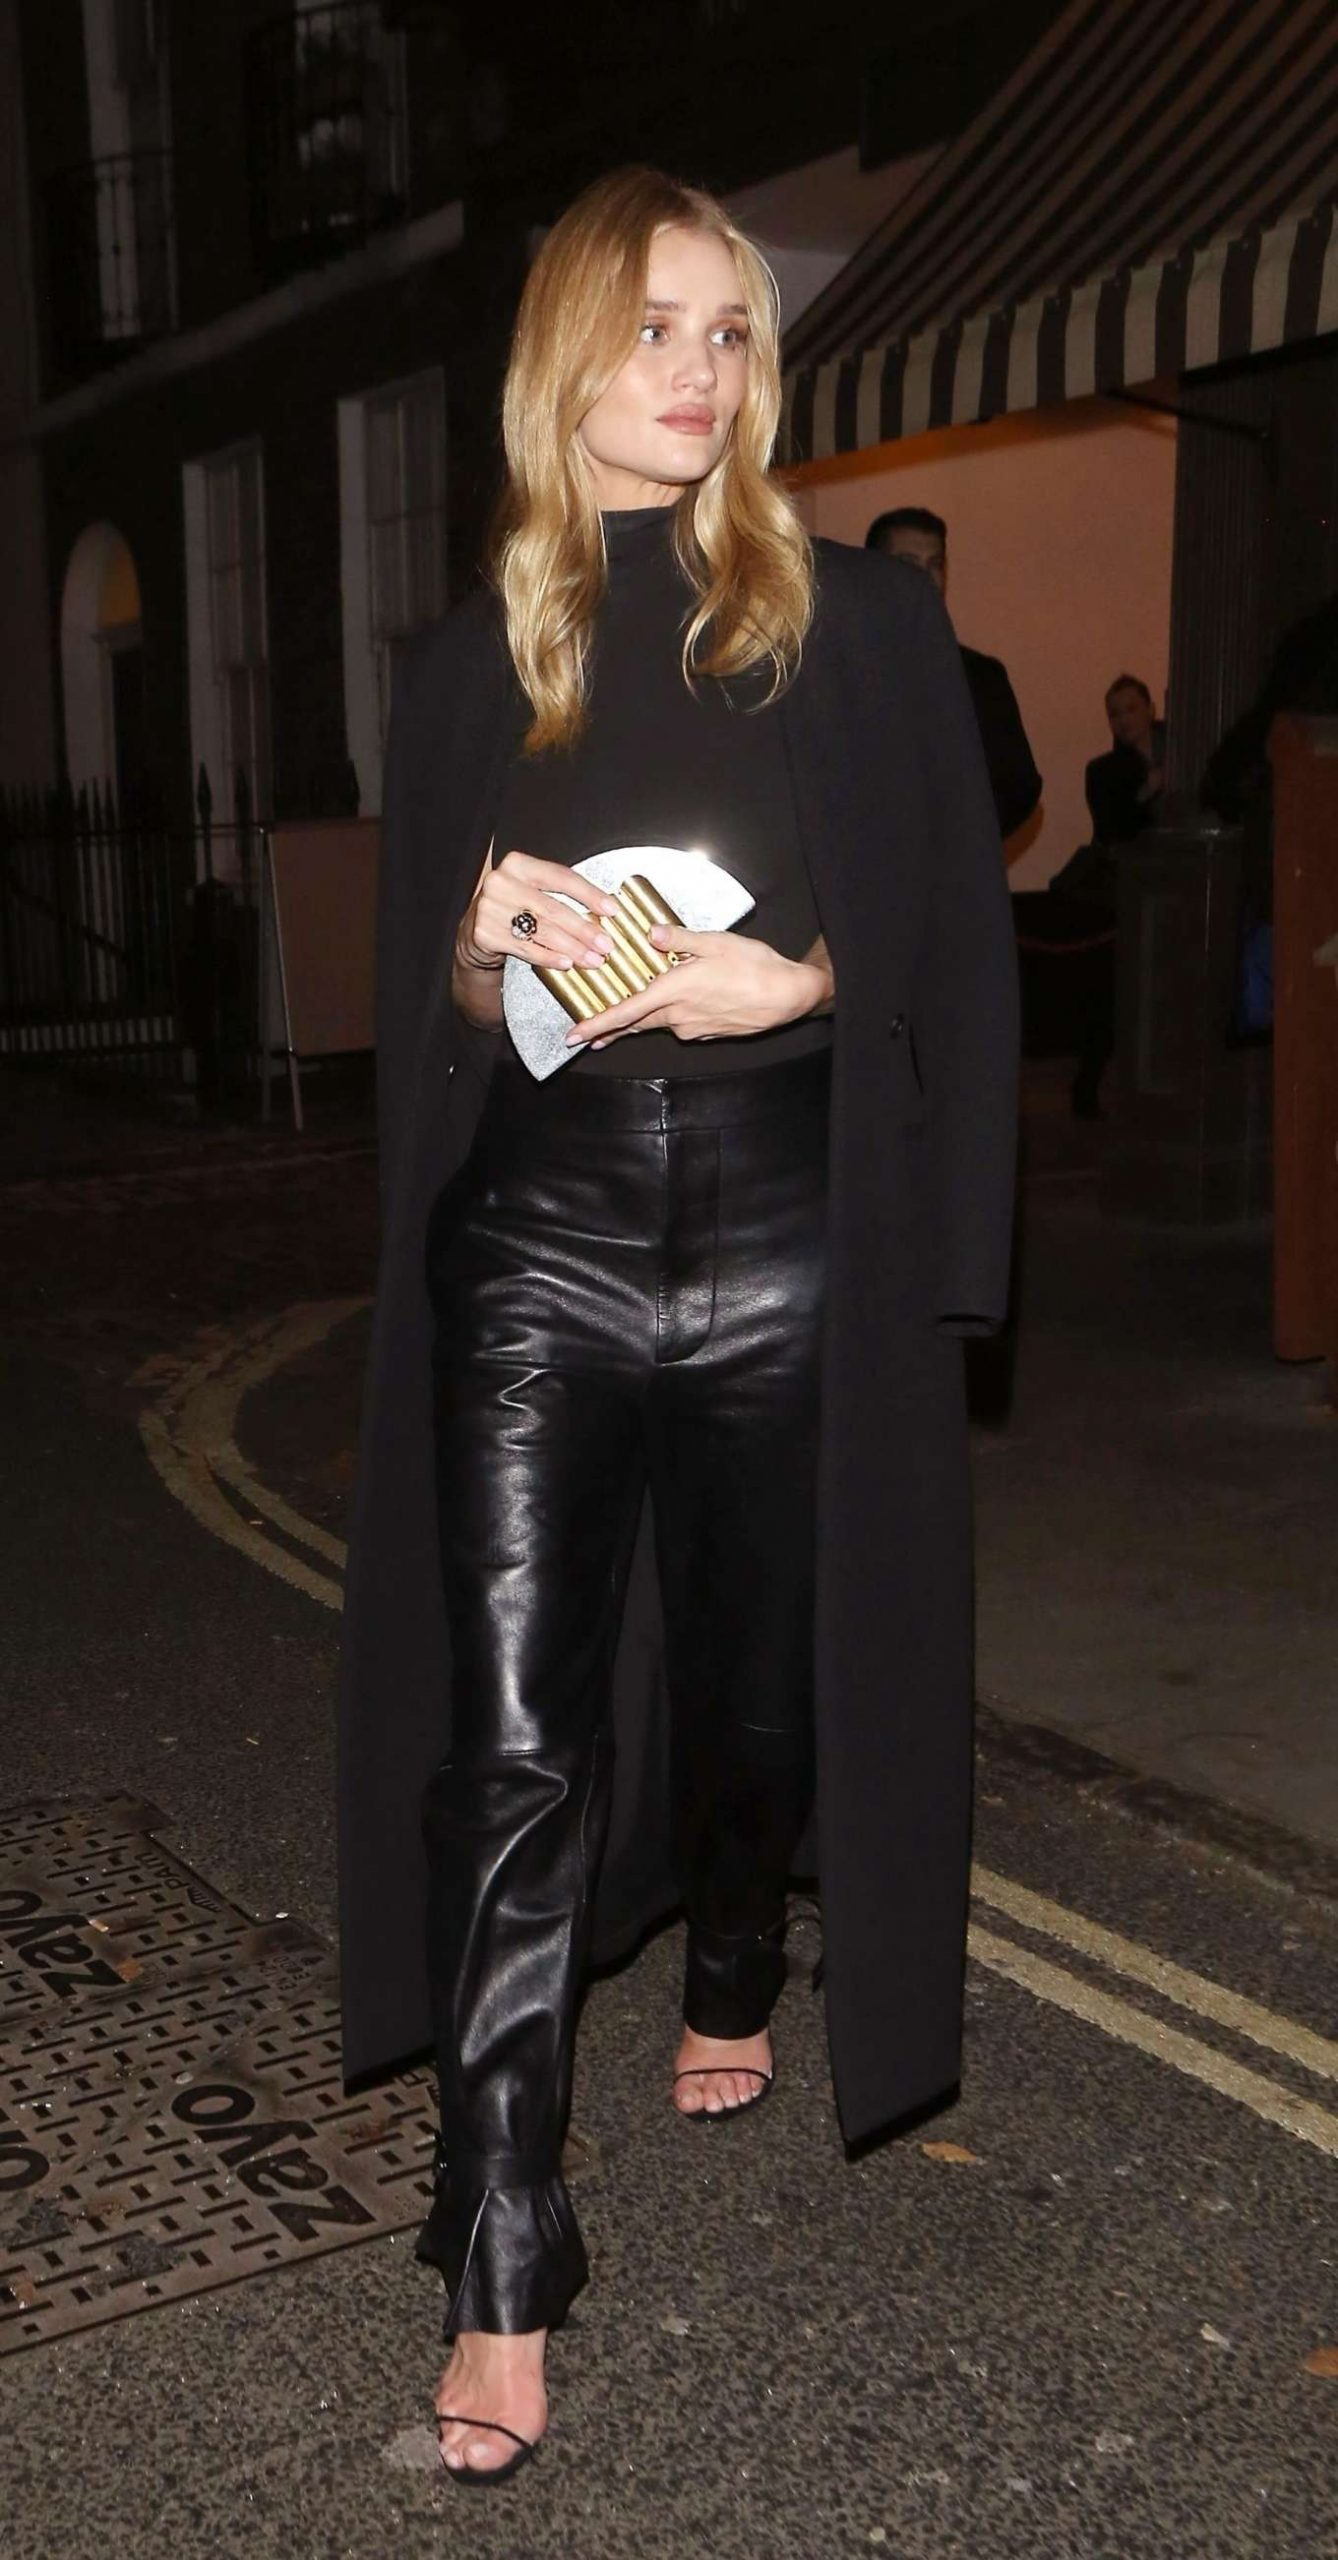 Rosie Huntington Whiteley 2019 : Rosie Huntington Whiteley in Leather Pants-06